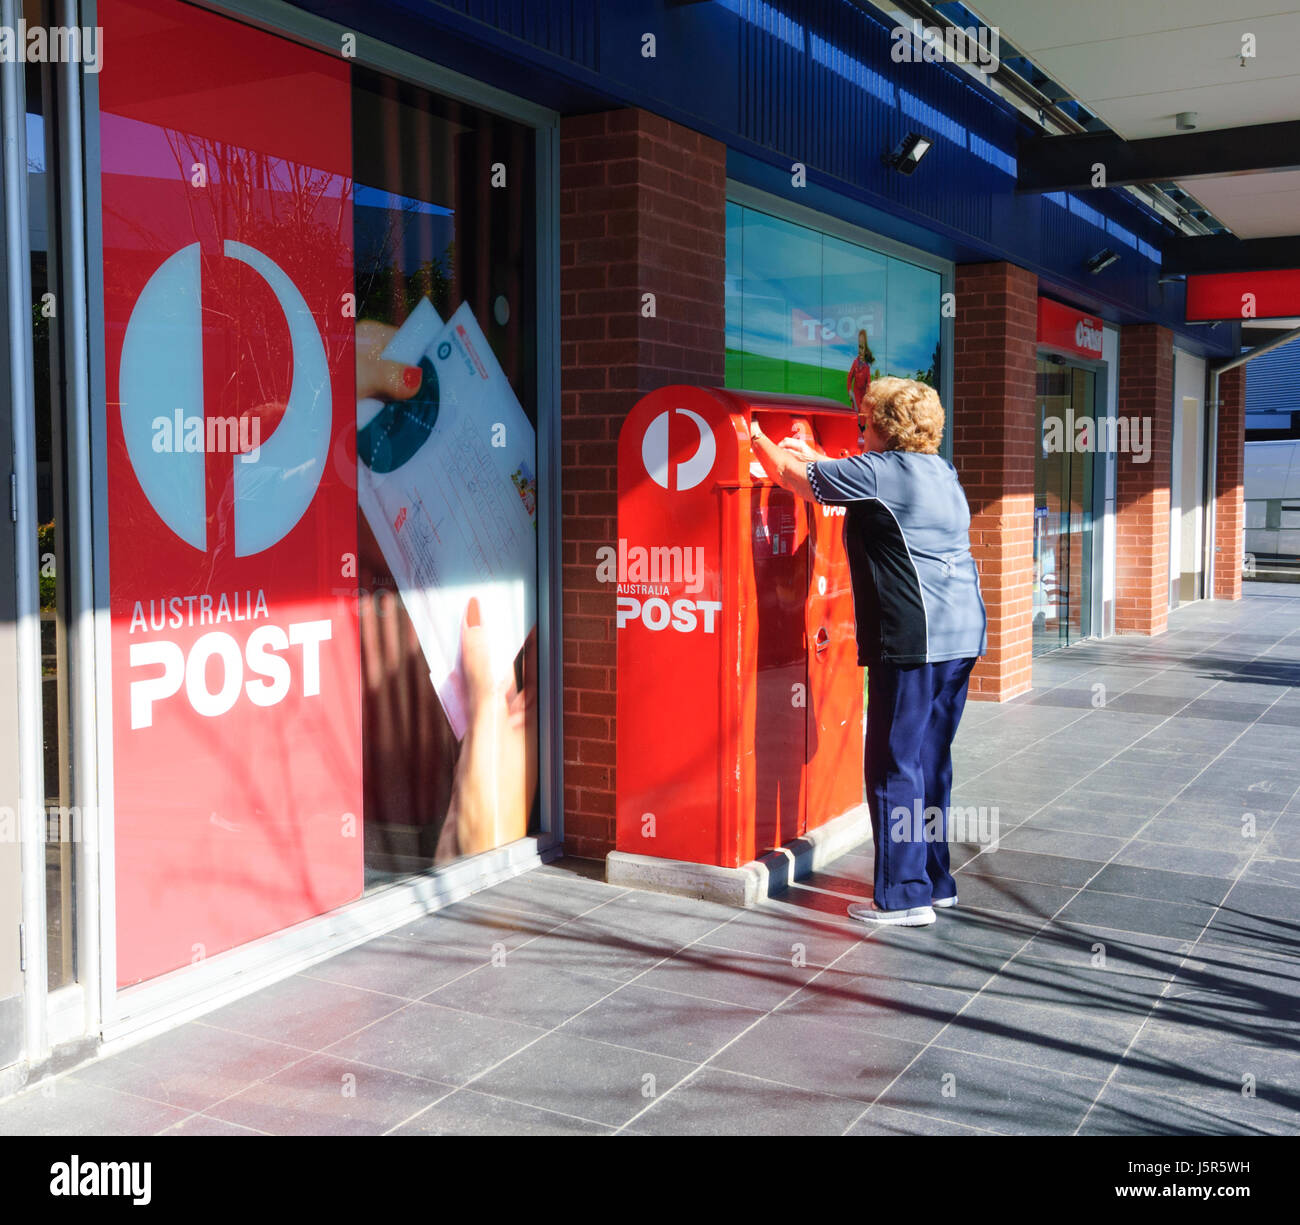 Mature Woman posting a letter in an Australia Post letterbox, Shellharbour, New South Wales, NSW, Australia - Stock Image